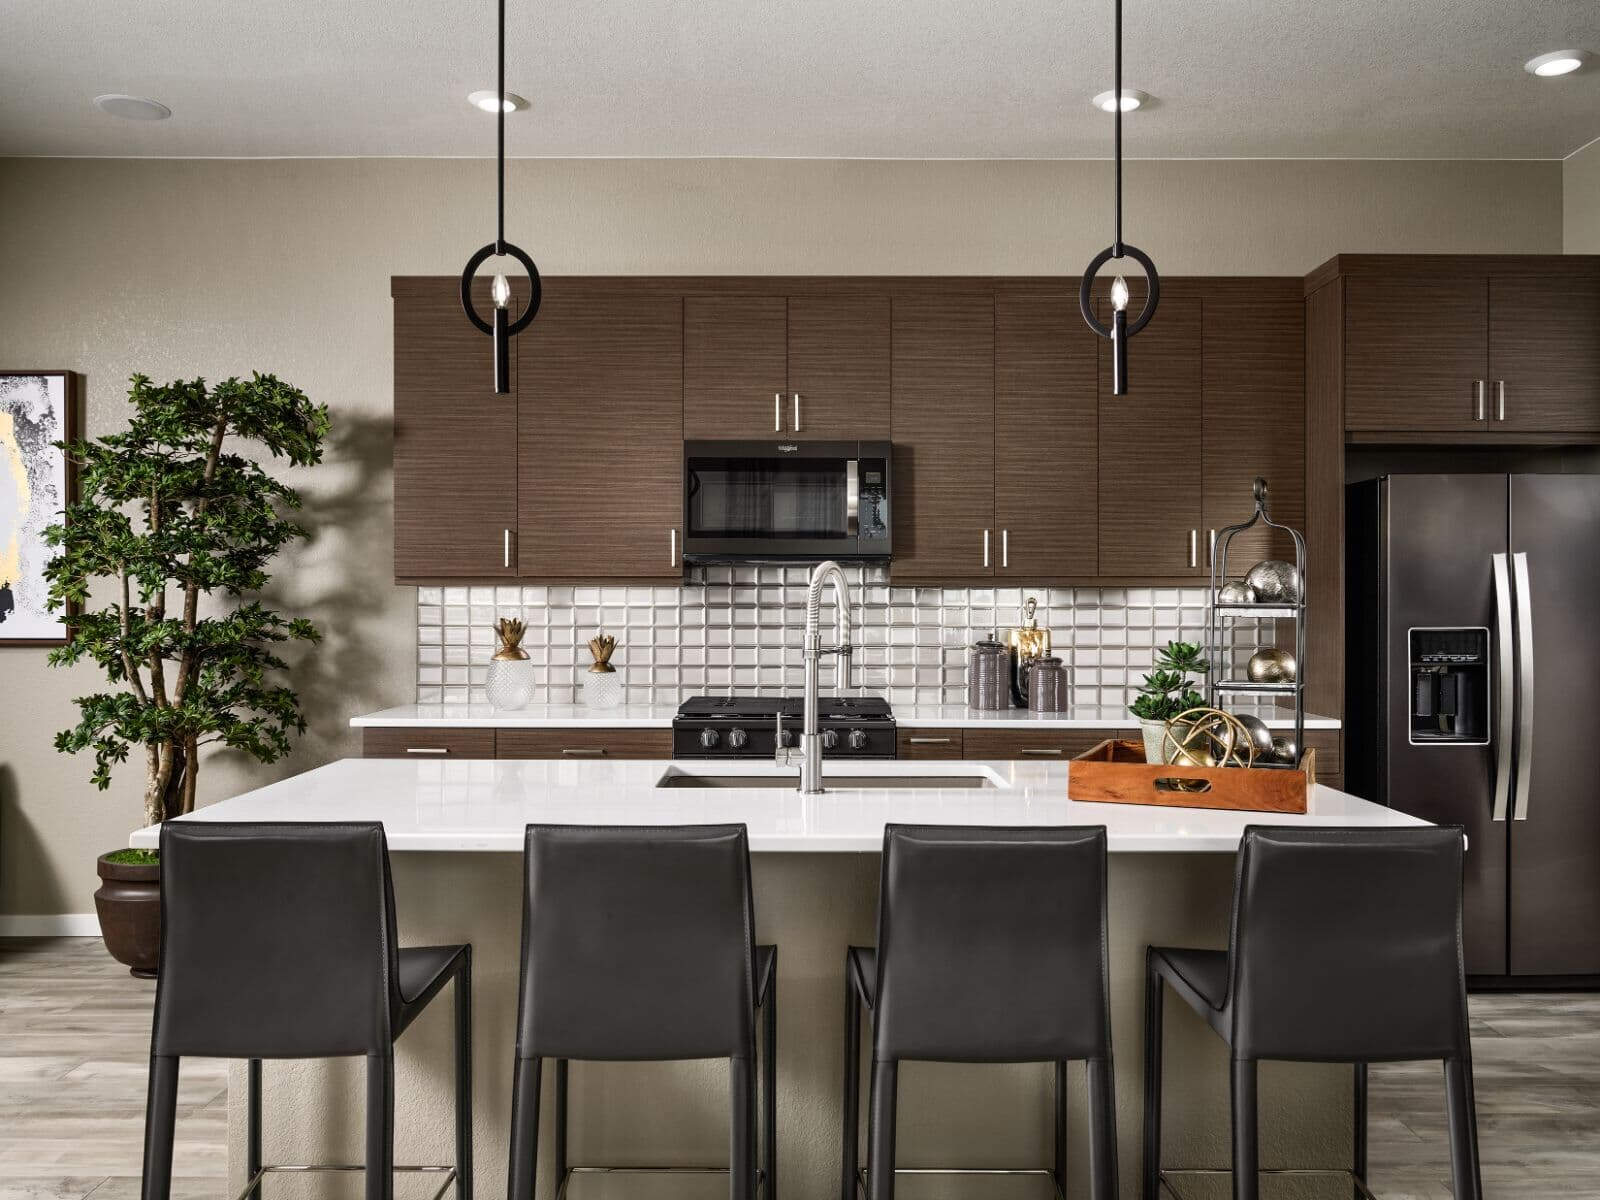 Villa-Two-Kitchen-Barefoot-Lakes-Denver-Colorado